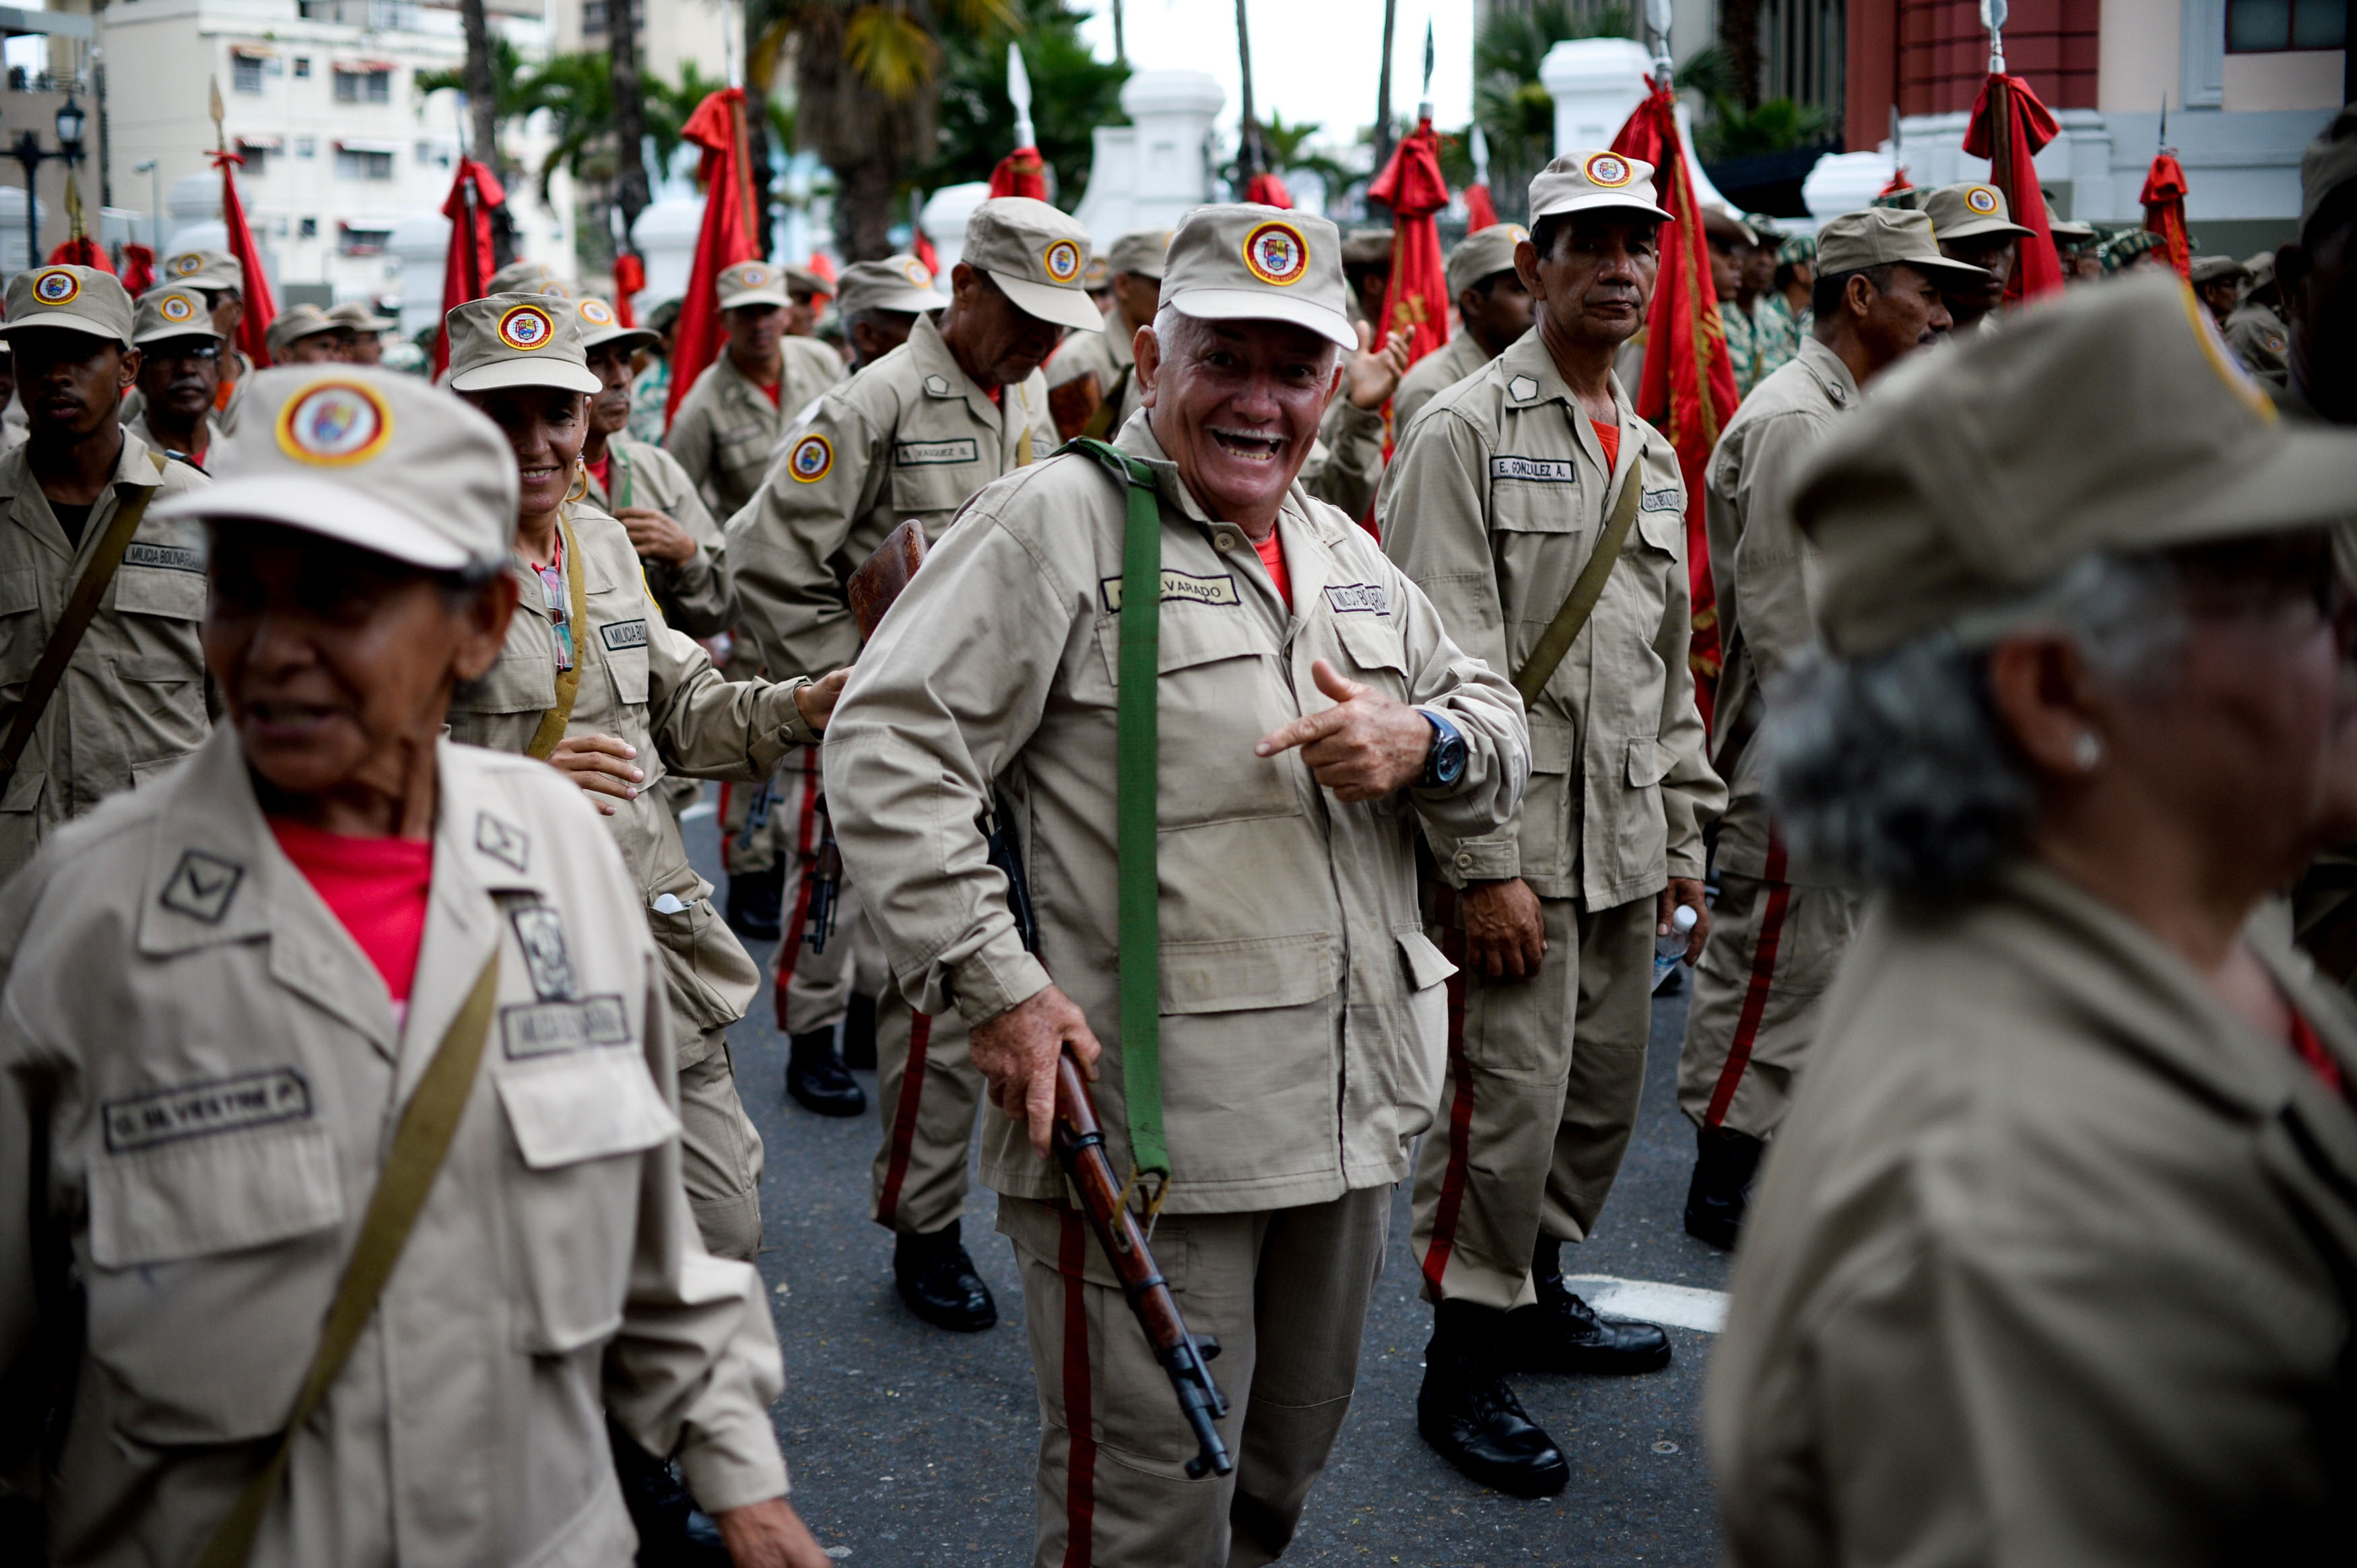 """Members of the Bolivarian Militia take part in a parade in the framework of the seventh anniversary of the force, in front of the Miraflores presidential palace in Caracas on April 17, 2017. Venezuela's defence minister on Monday declared the army's loyalty to Maduro, who ordered troops into the streets ahead of a major protest by opponents trying to oust him. Venezuela is bracing for what Maduro's opponents vow will be the """"mother of all protests"""" Wednesday, after two weeks of violent demos against moves by the leftist leader and his allies to tighten their grip on power. / AFP PHOTO / Federico PARRA"""